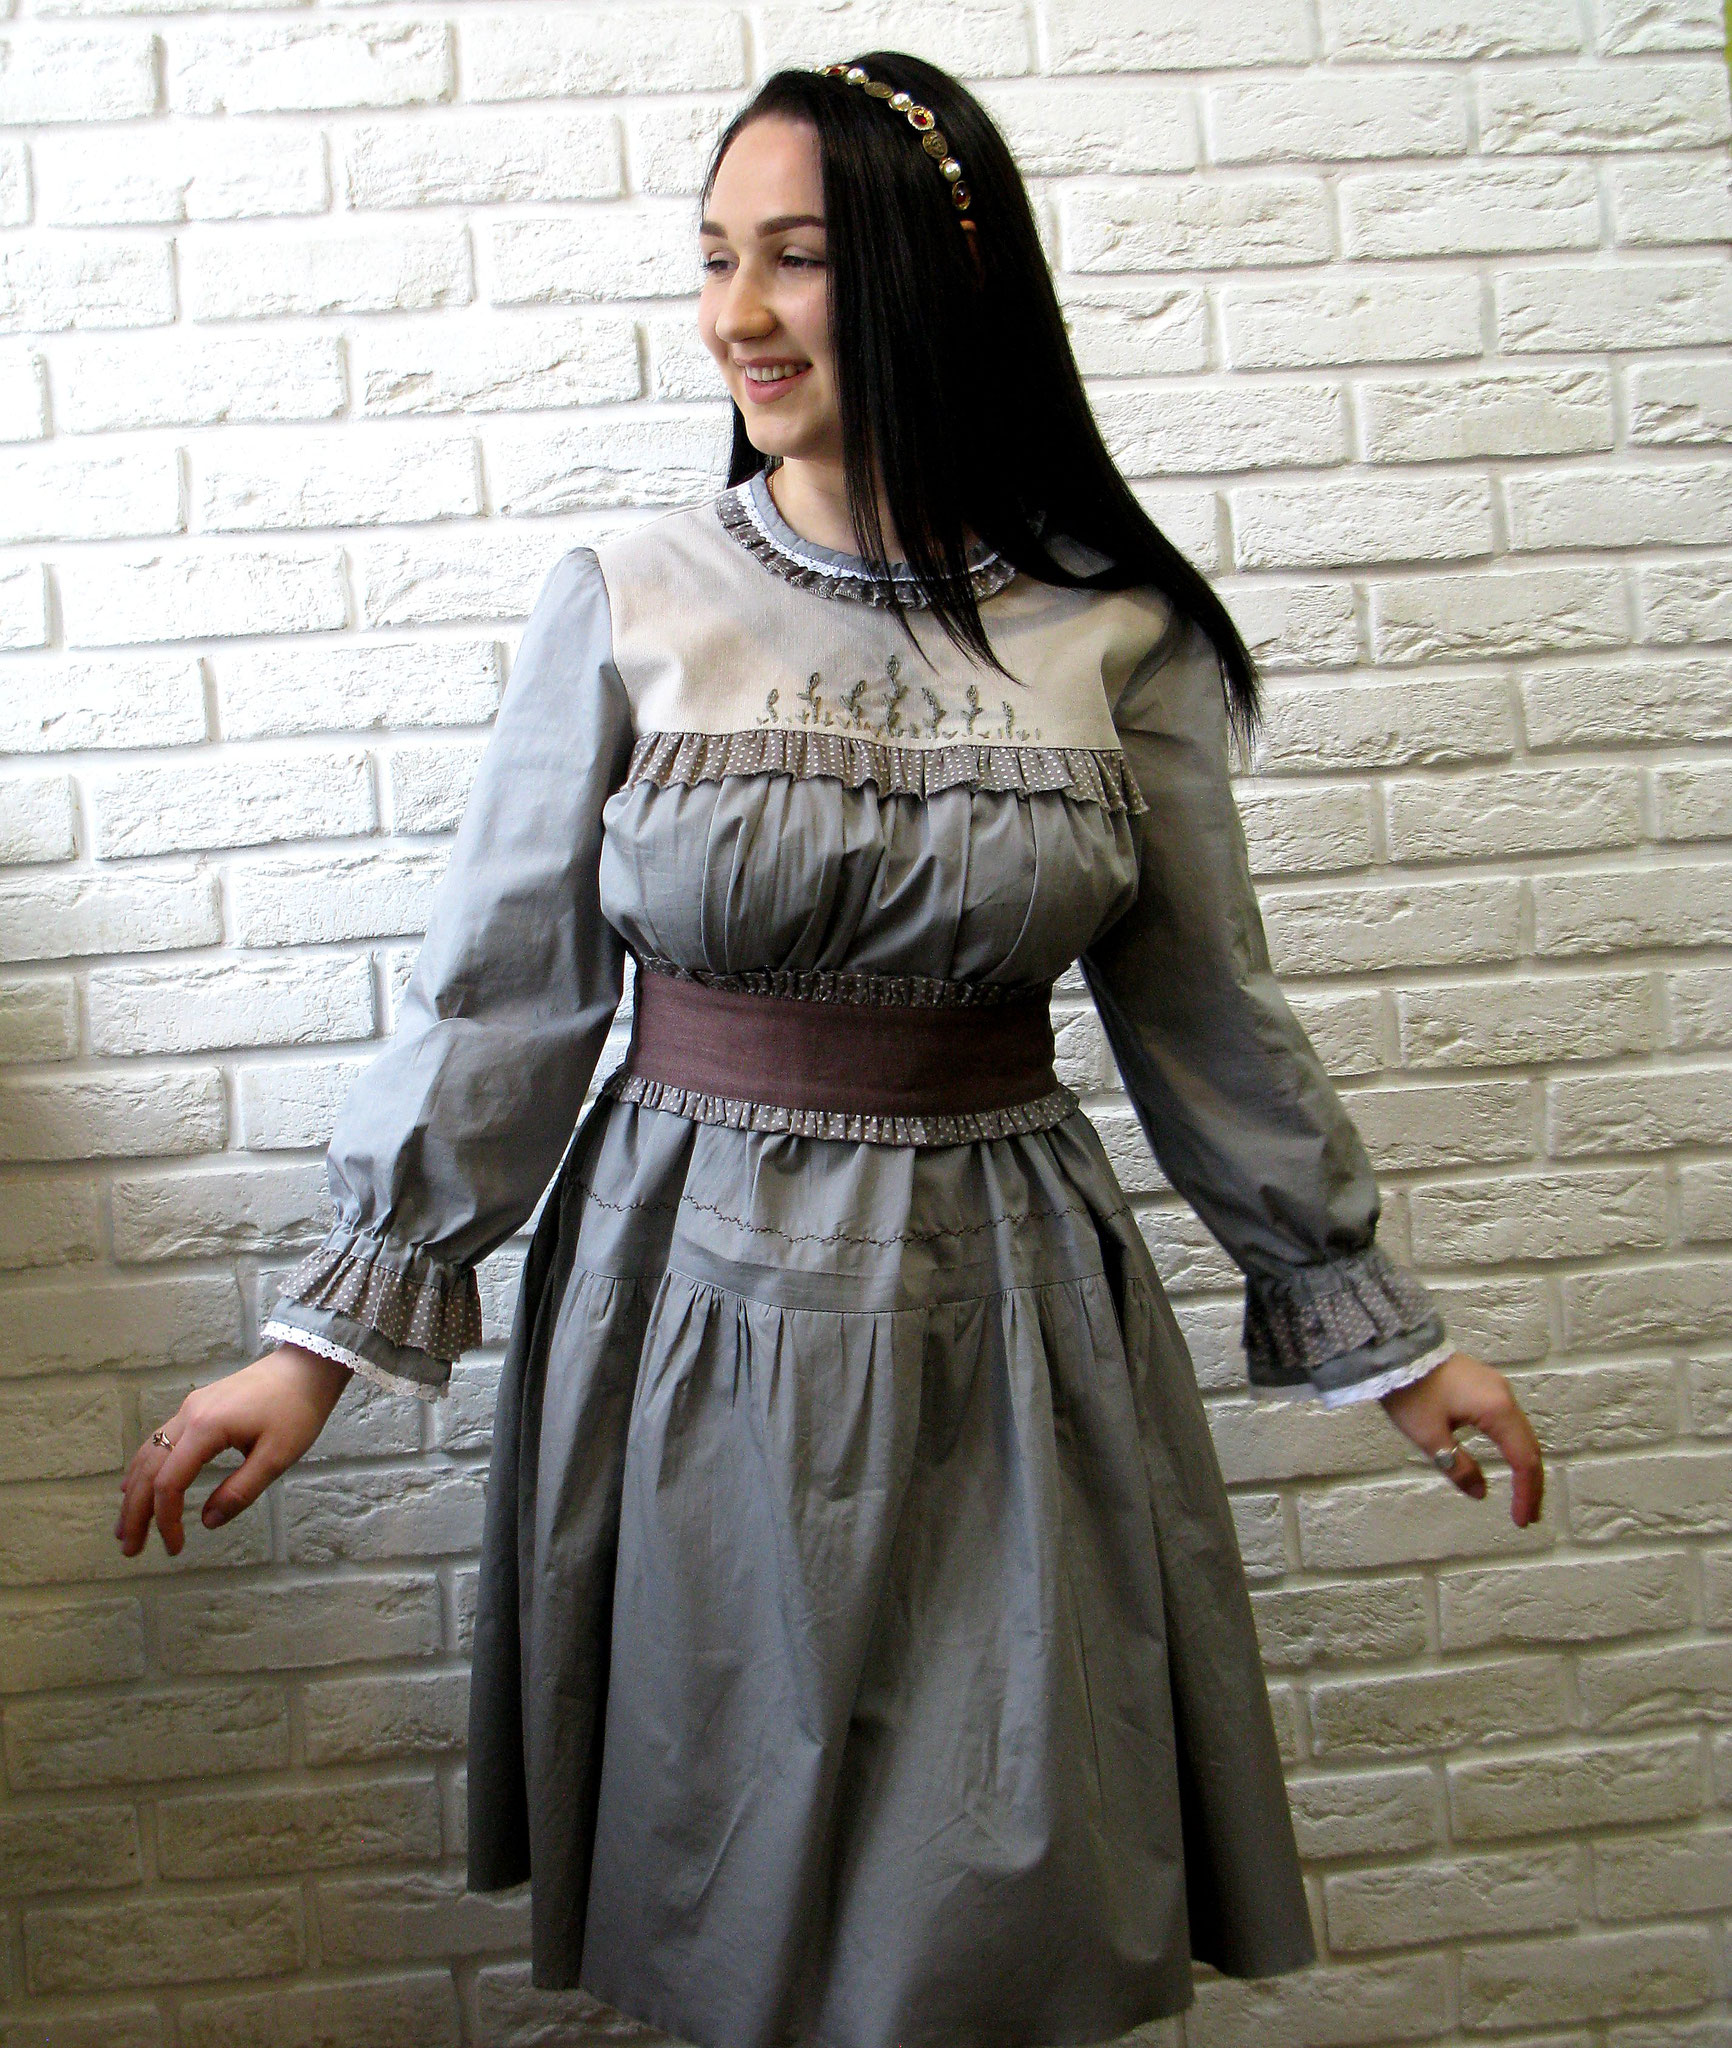 russian style dress, cotton dress boho, bohemian dress